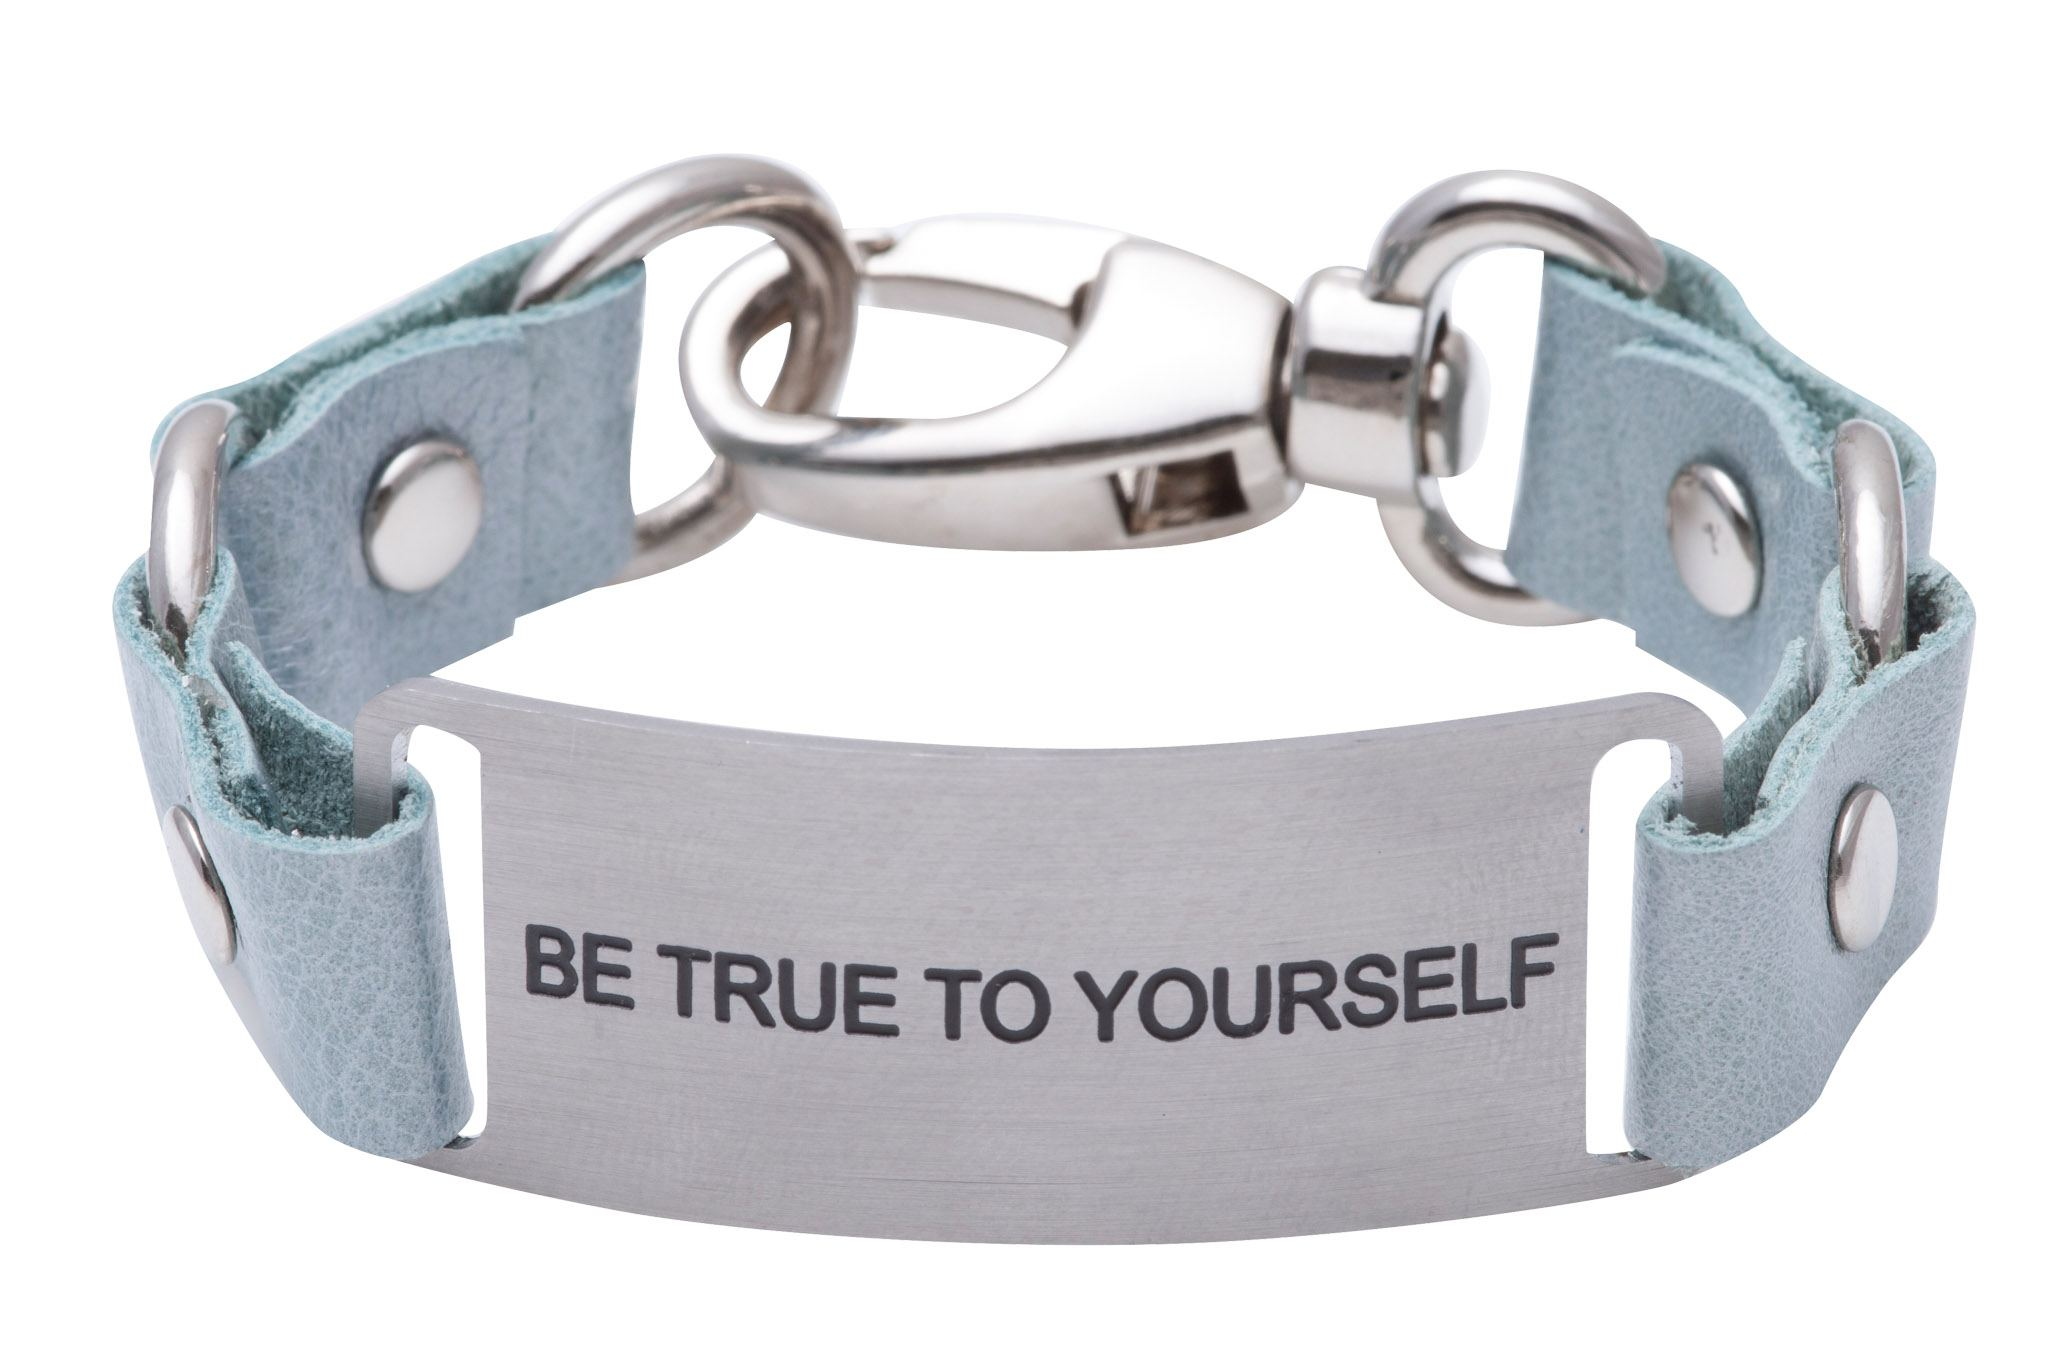 Load image into Gallery viewer, Message Bracelet Light Blue Leather Be True To Yourself